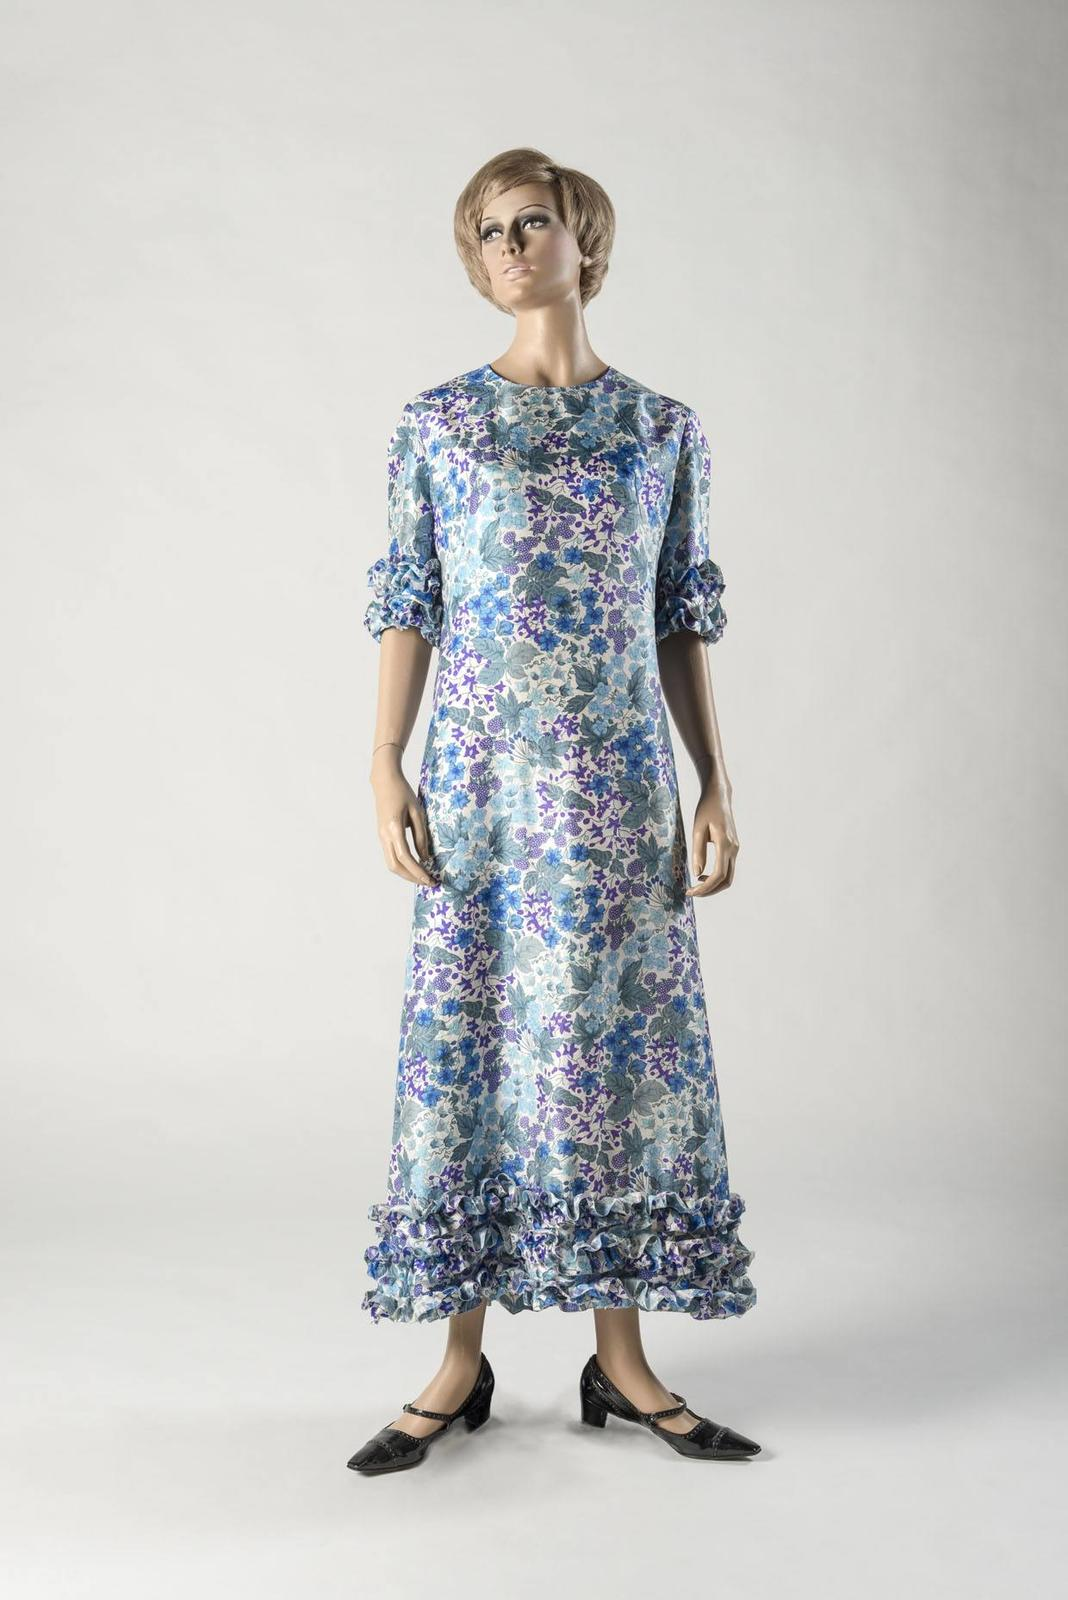 Dress Of The Year Fashion Museum Kate Embroidery Blouse In Blue Beatrice Clothing Image 1964